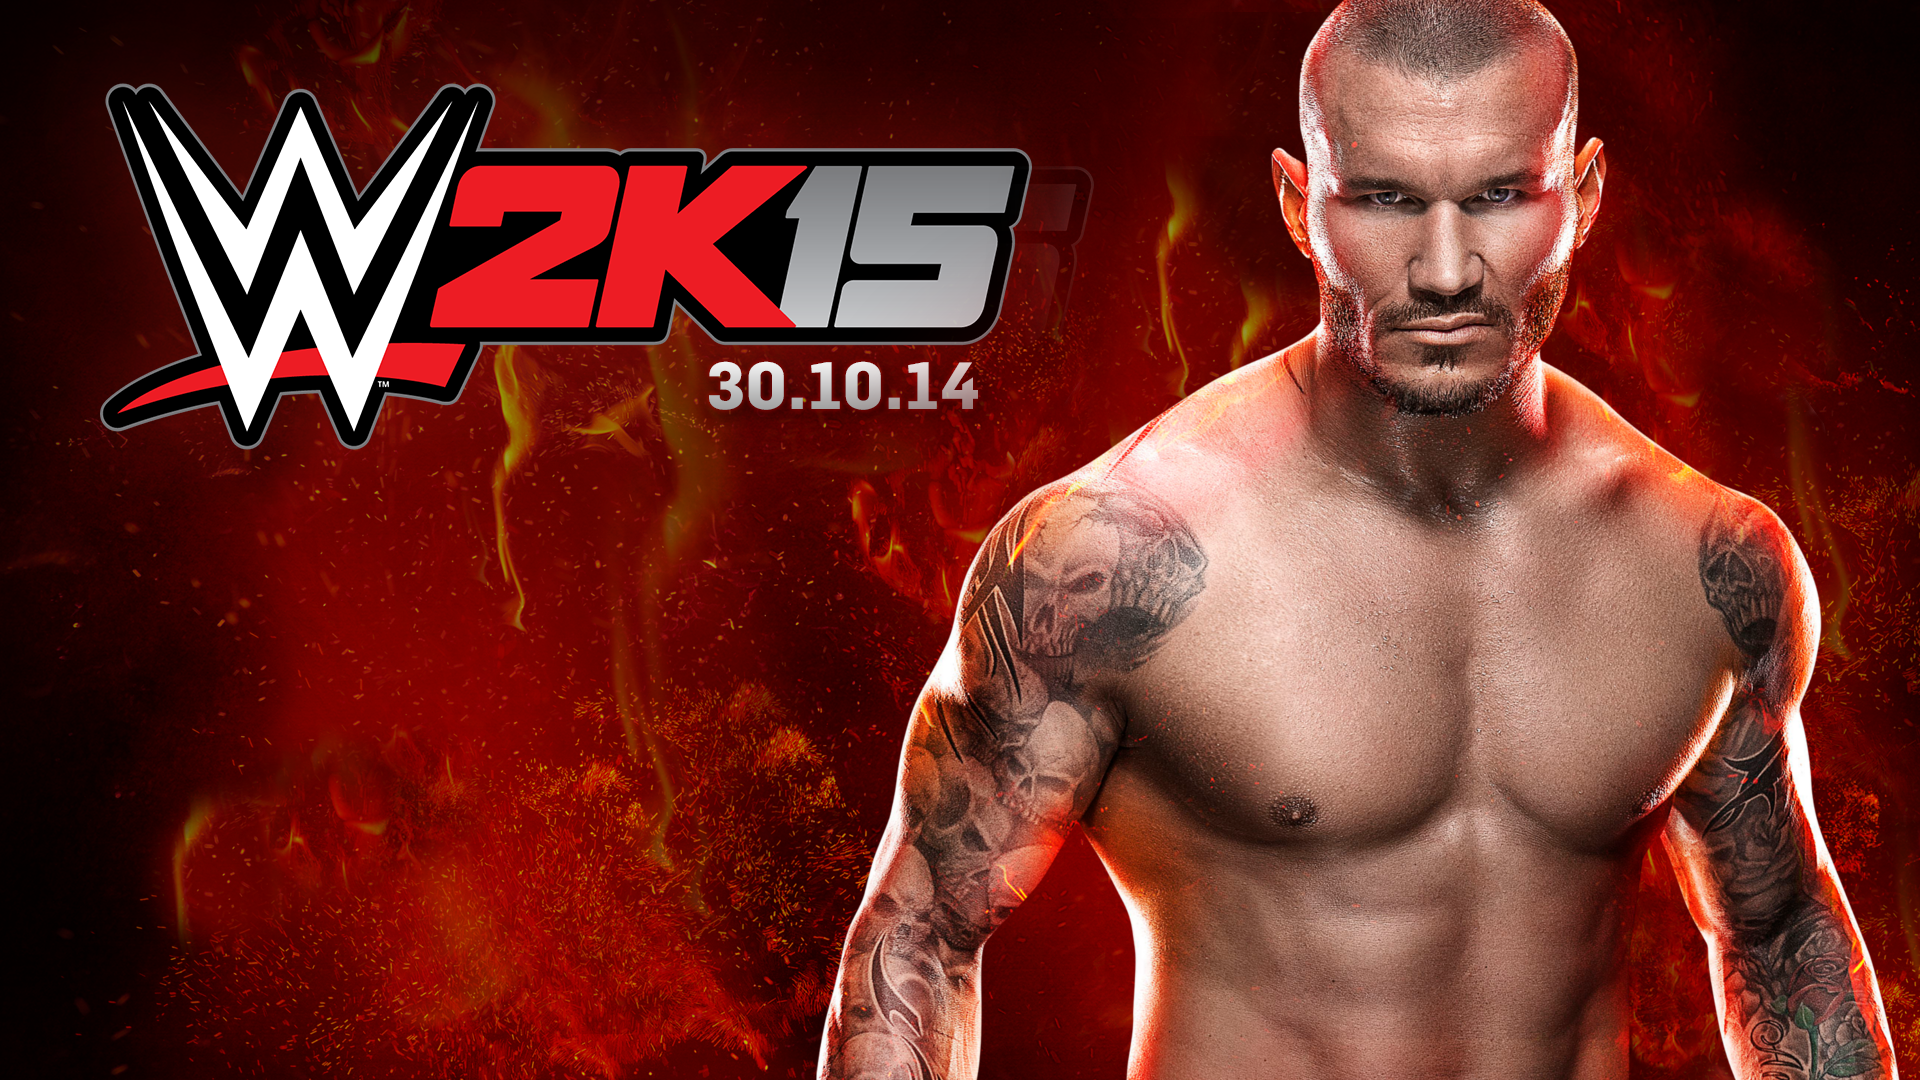 randy orton wwe 2k15 wallpaper hd #10334 wallpaper | high | best